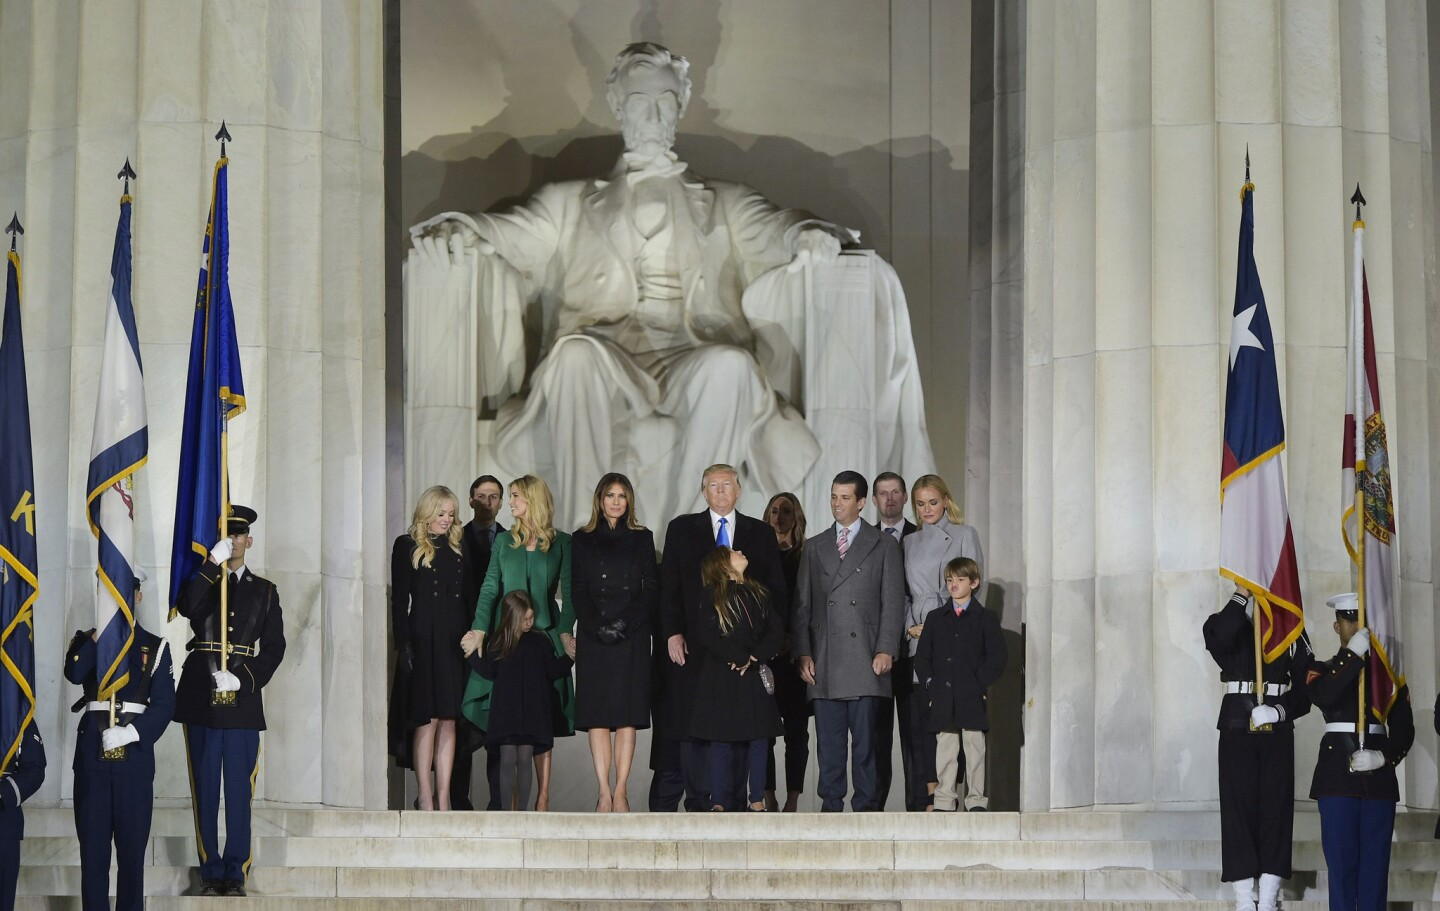 President-elect Donald Trump and family pose at the end of a celebration at the Lincoln Memorial in Washington, D.C., on Thursday.